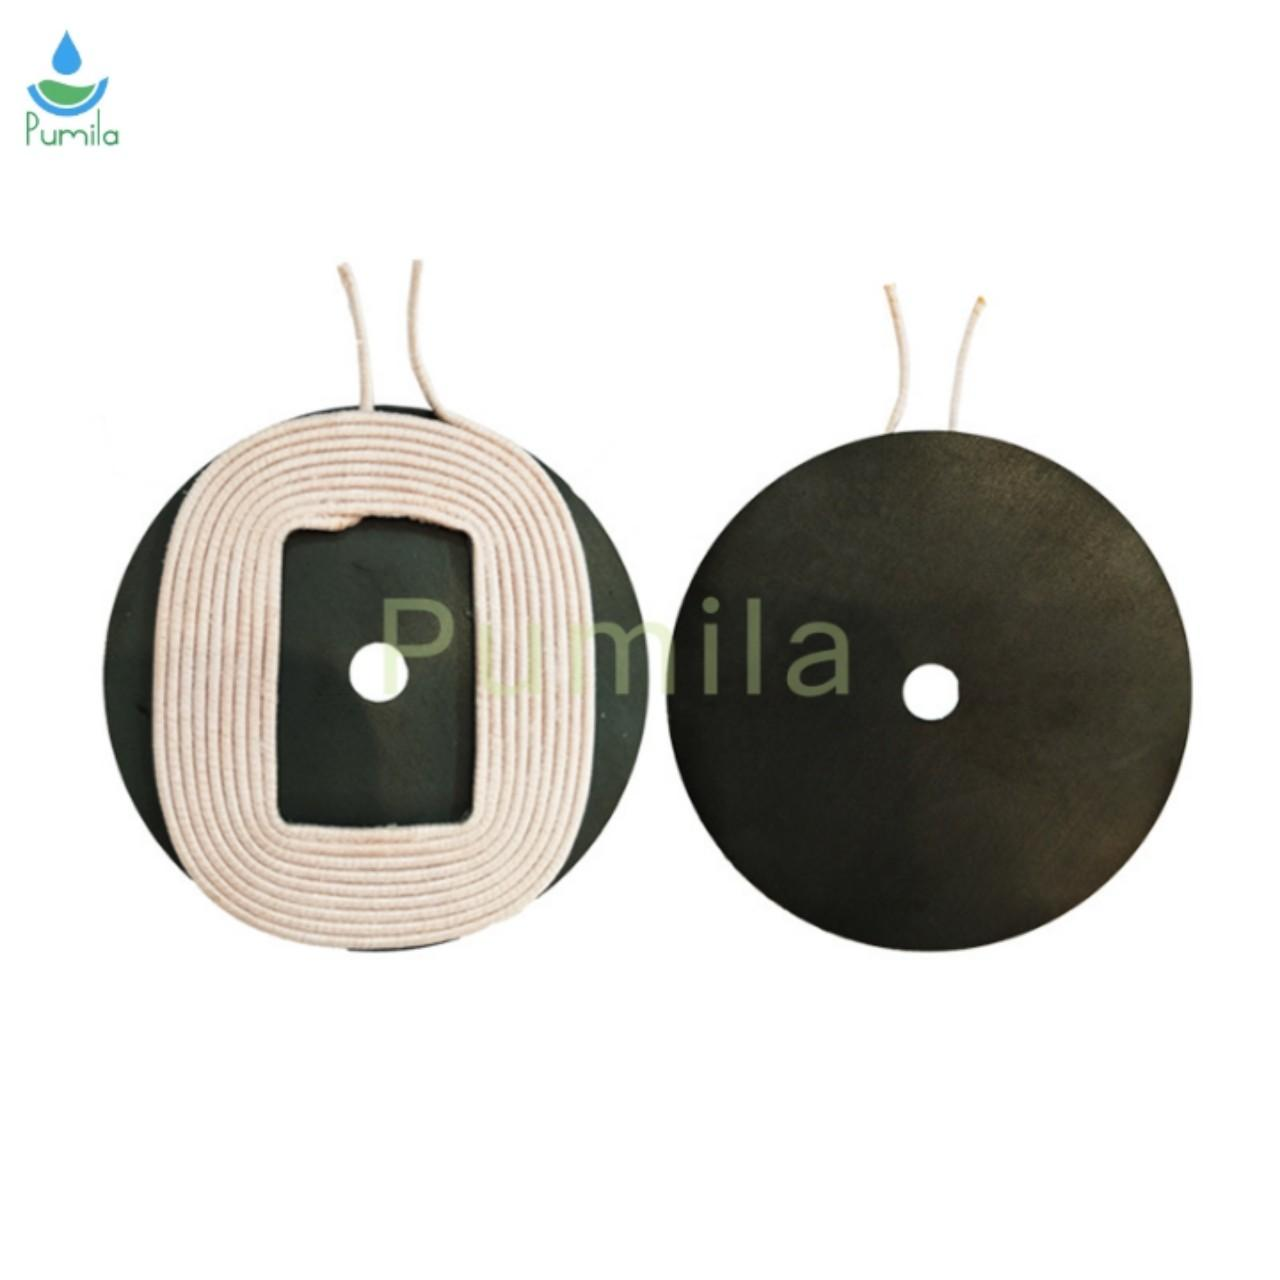 43mm Wireless charger coil A11 for Vishay Dale Electronics for sale